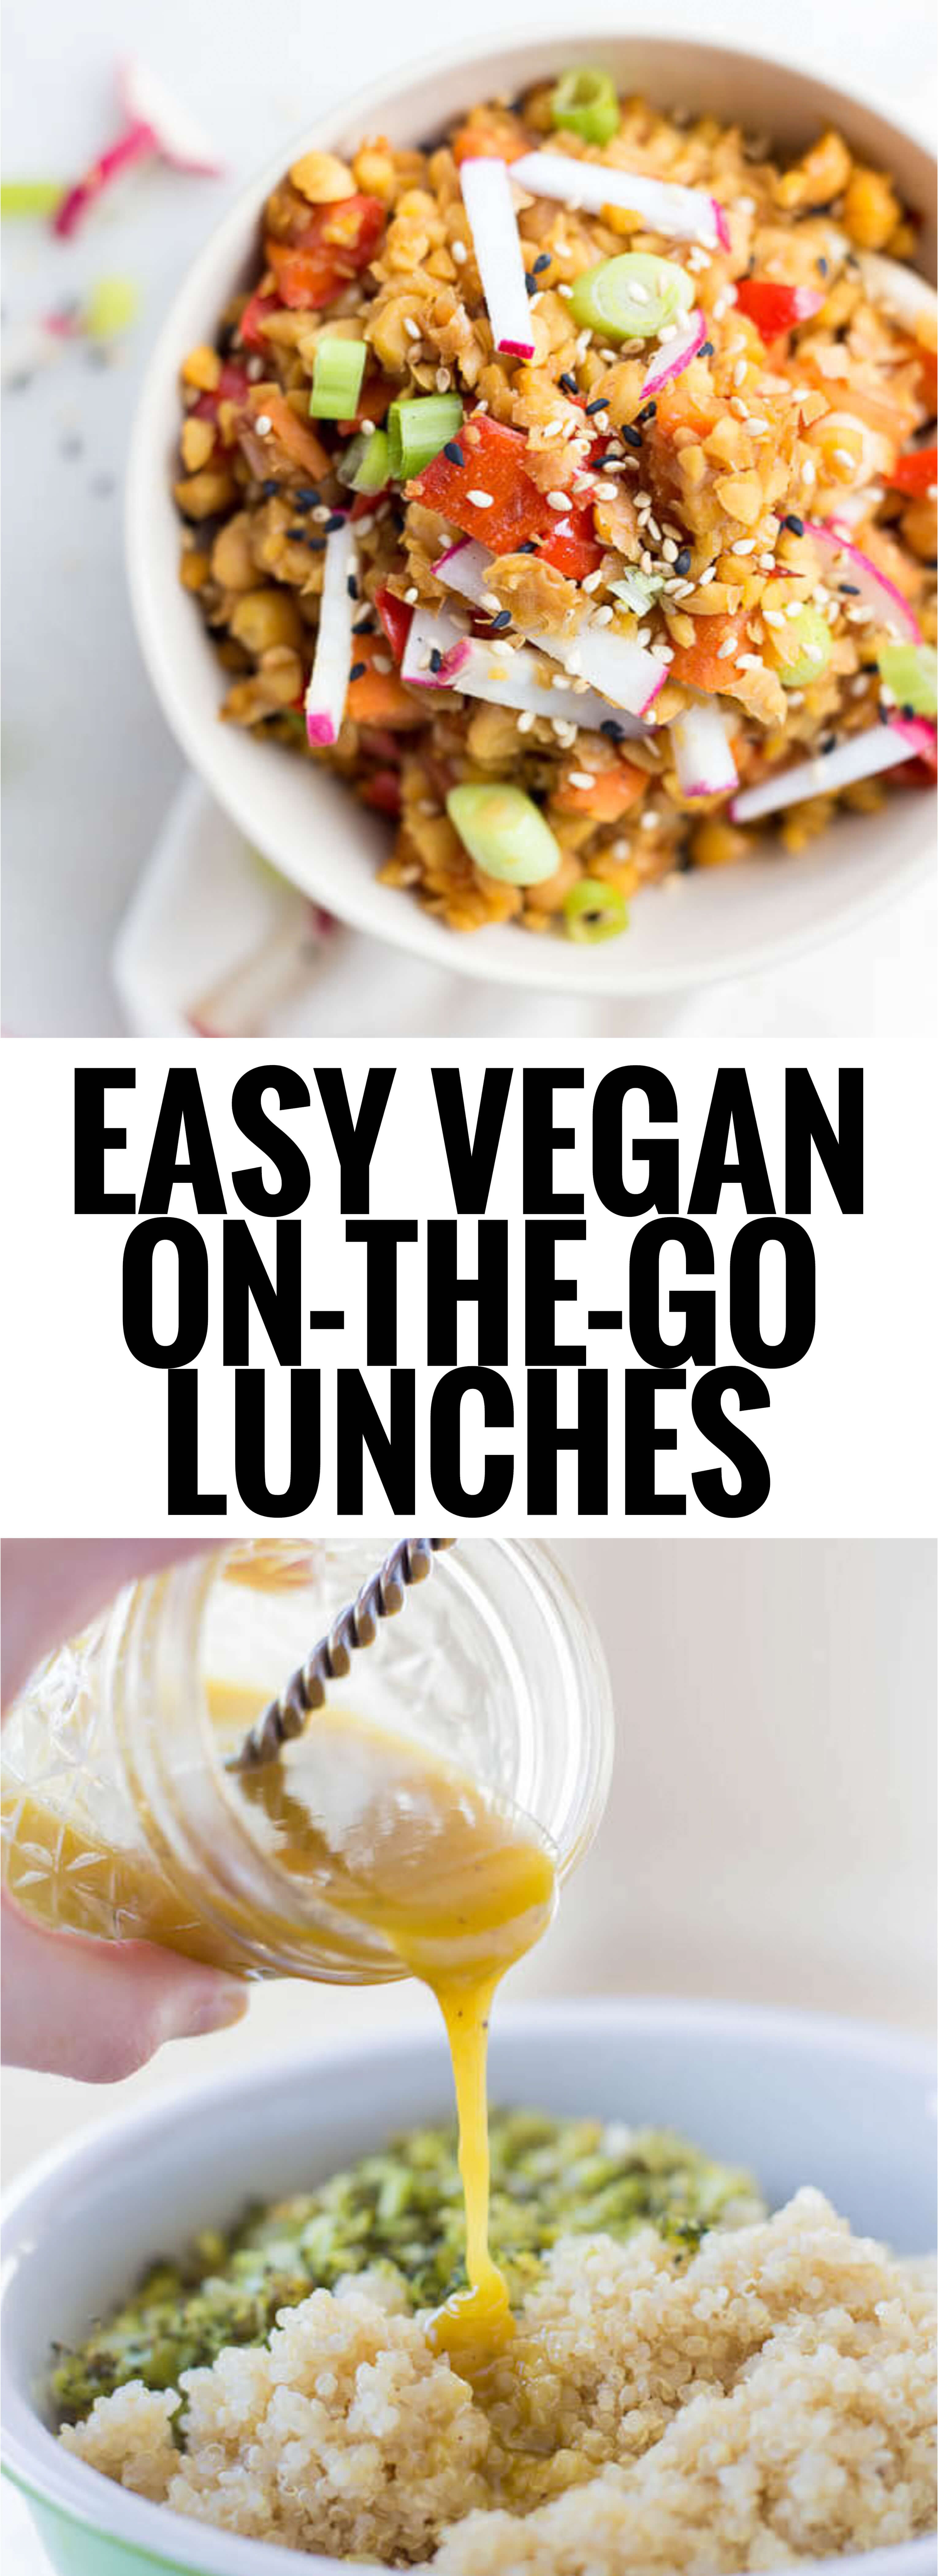 On The Go Healthy Lunches  Easy Vegan the Go Lunches Fooduzzi